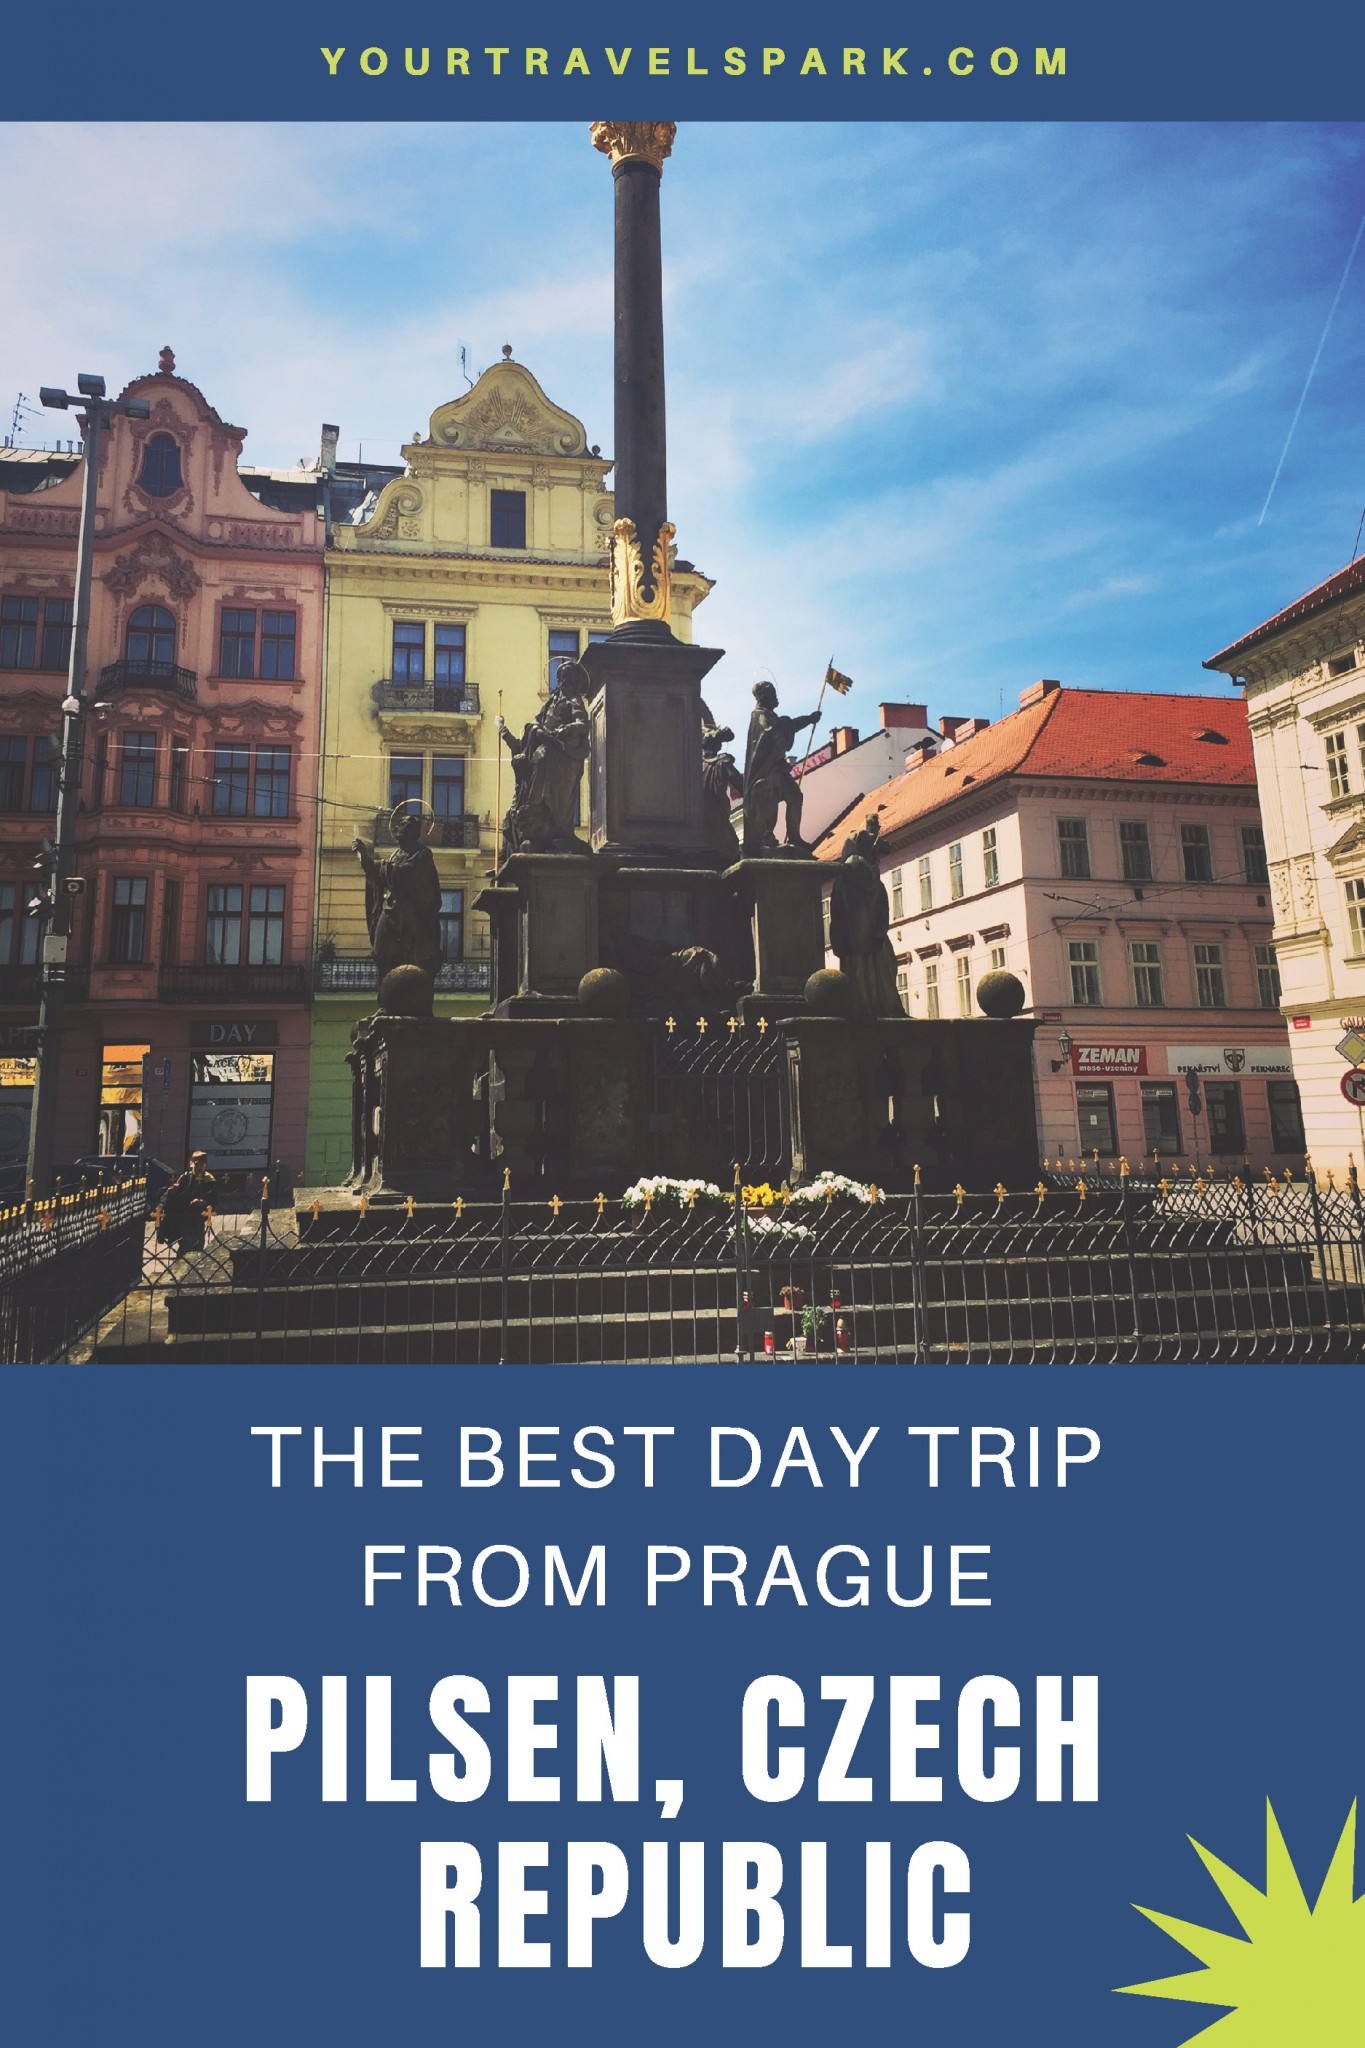 Visiting Pilsen, Czech Republic (or Plzn, Czech Republic) is one of the best day trips from Prague, Czech Republic. Here are the top things to do in Pilsen, Czech Republic. #pilsen #pilsencz #czechrepublic #cztravel #prague #praguedaytrip #praguedaytrips #daytripsfromprague #pilsnerurquell #pilsnerurquellbeer #pilsnerurquellbrewery #plzn #plzncz #plznczechrepublic #pilsenczechrepublic